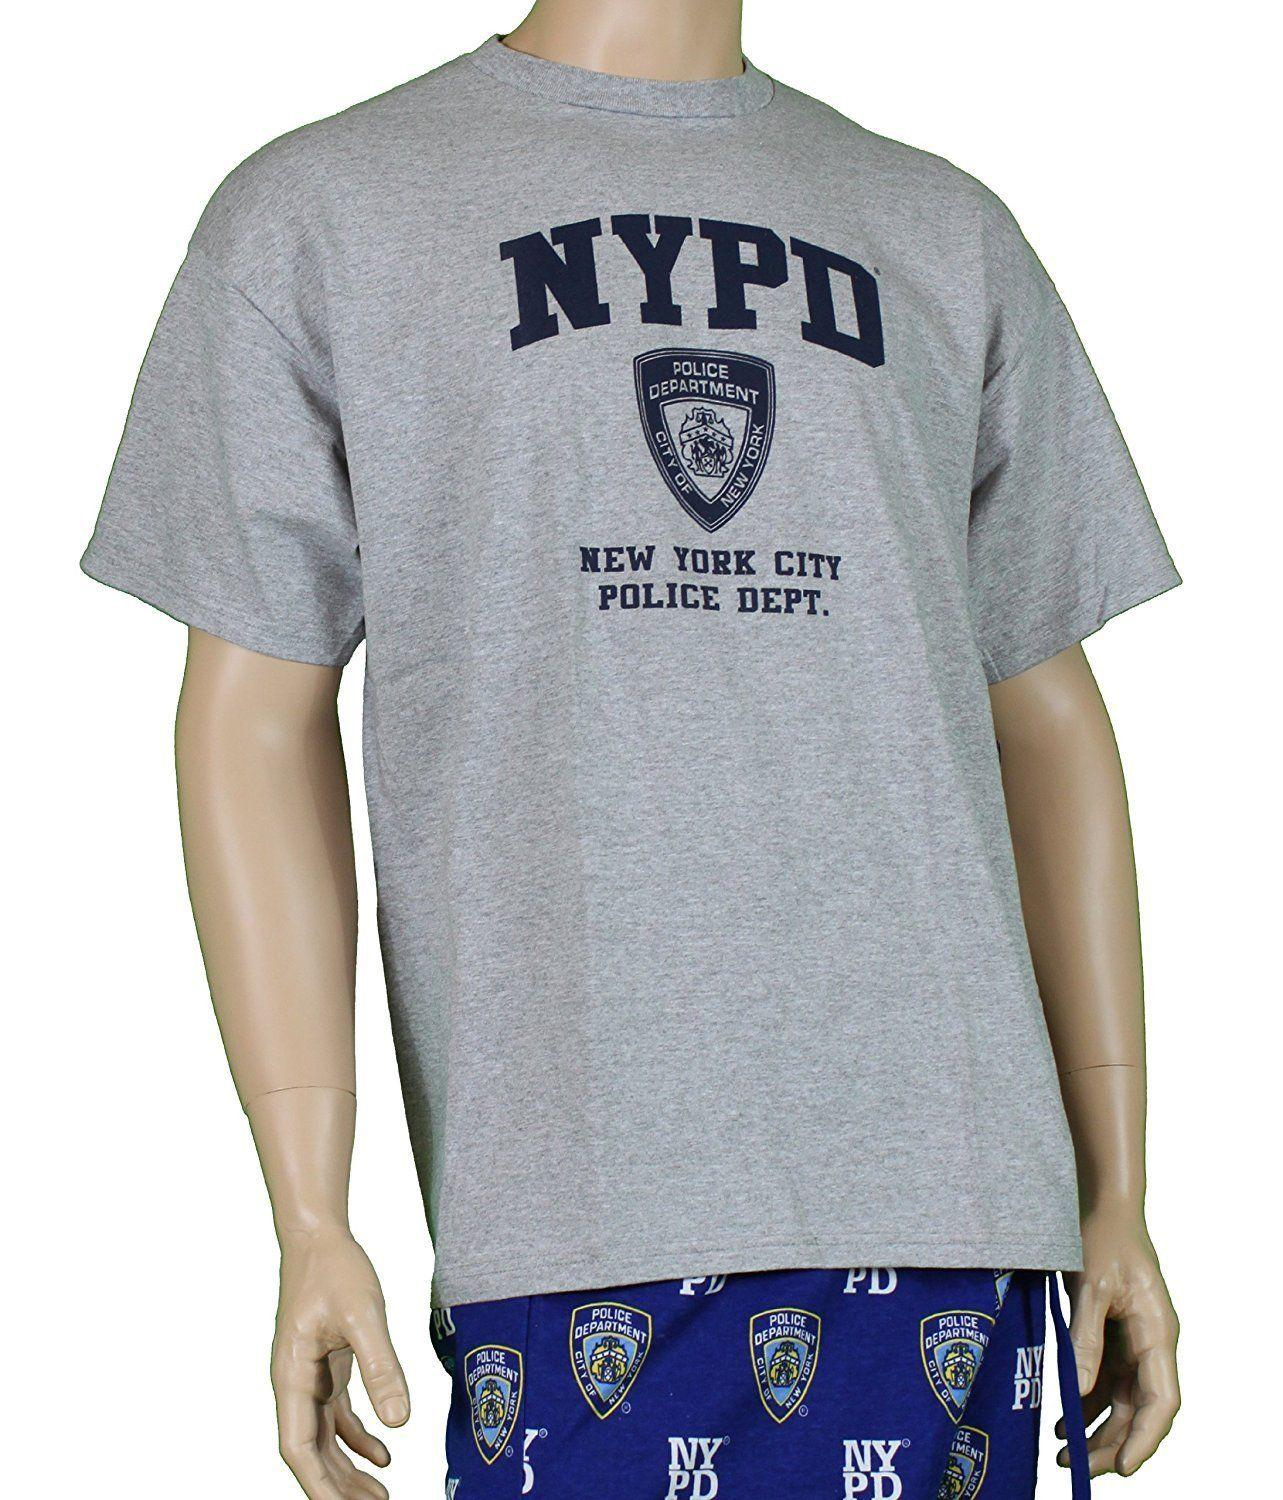 e770cfa2 Nypd 9/11 Official Licensed Memorial Short Sleeve T Shirt Gray Nypd Funny  Gift Short ,Short Sleeve T Shirt ,Tops Round Neck Tees Urban T Shirts Irish  T ...